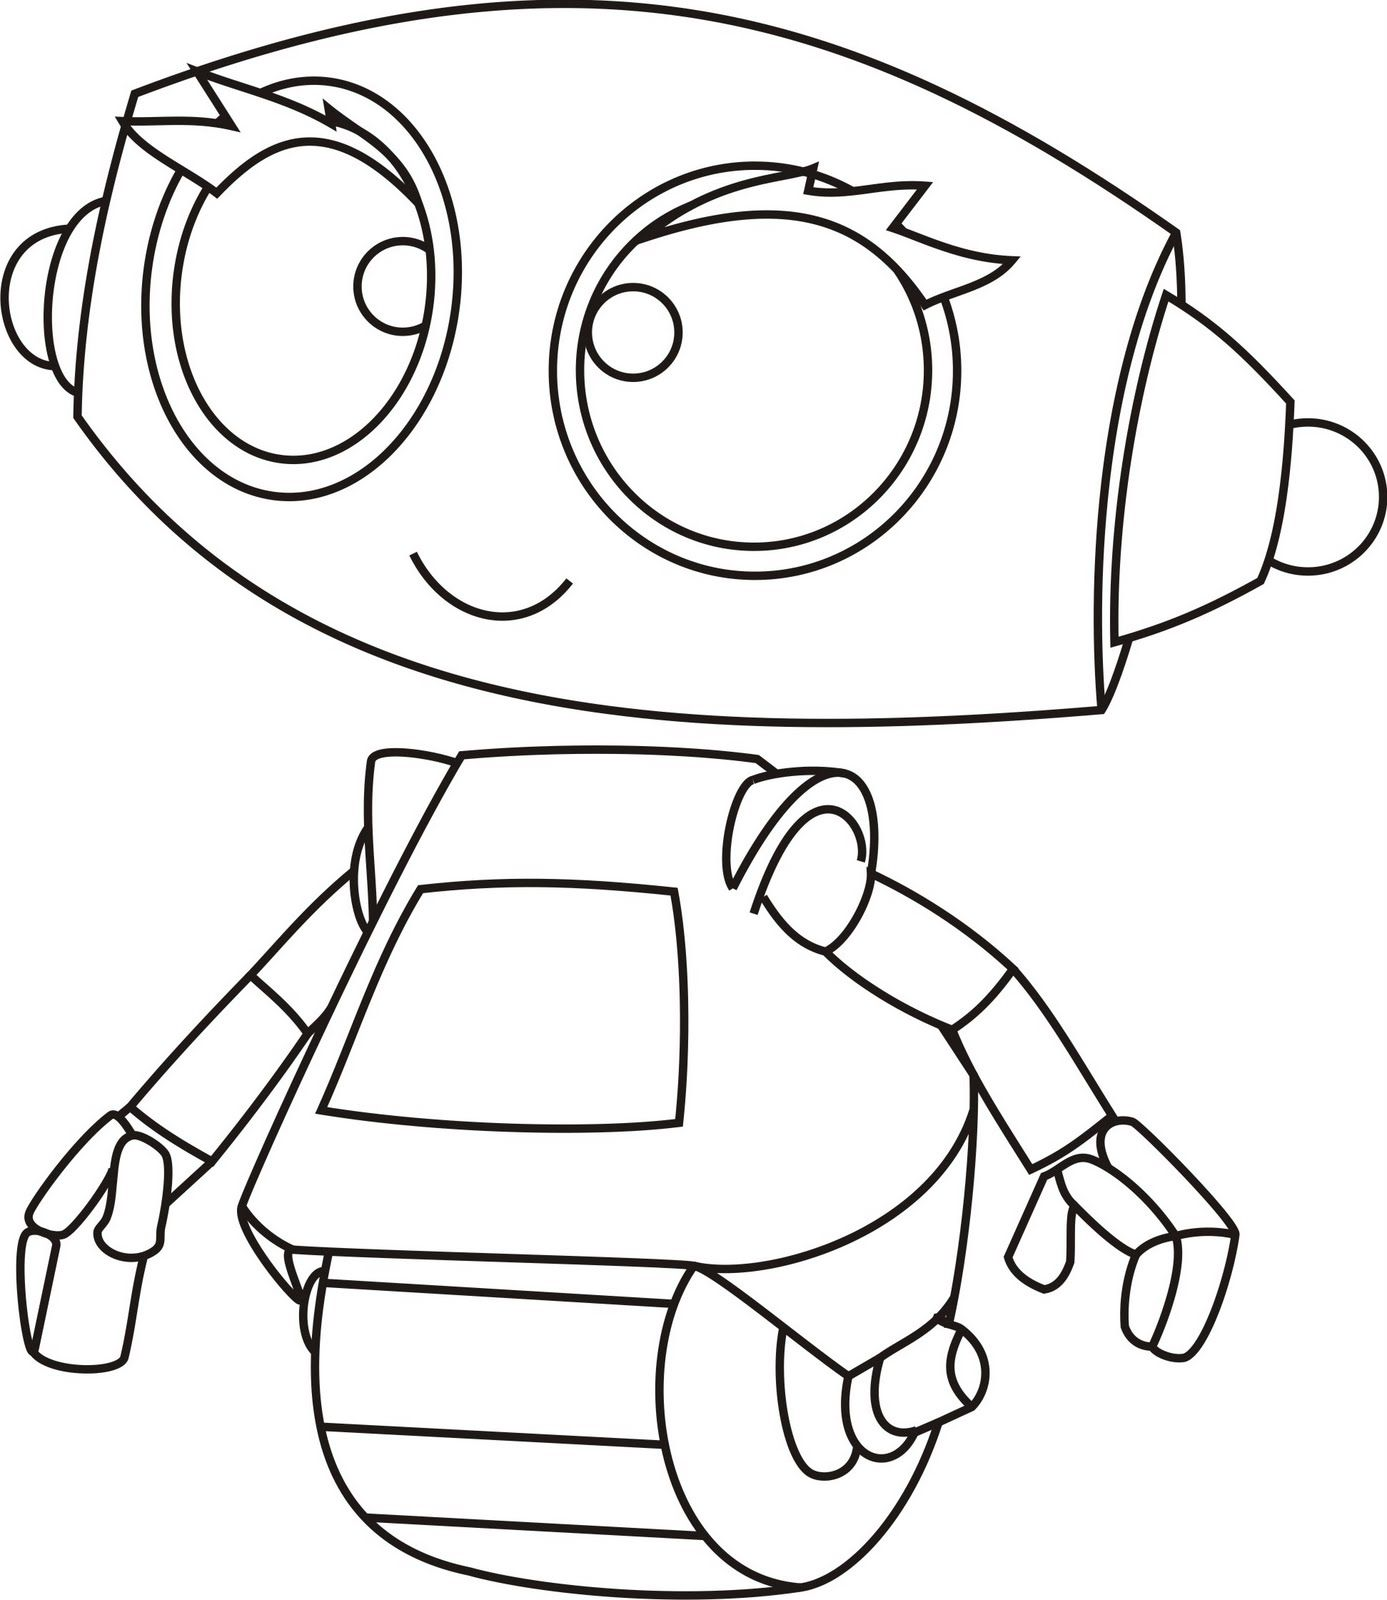 Coloring pictures robot - Simple Robot Coloring Page For Kids